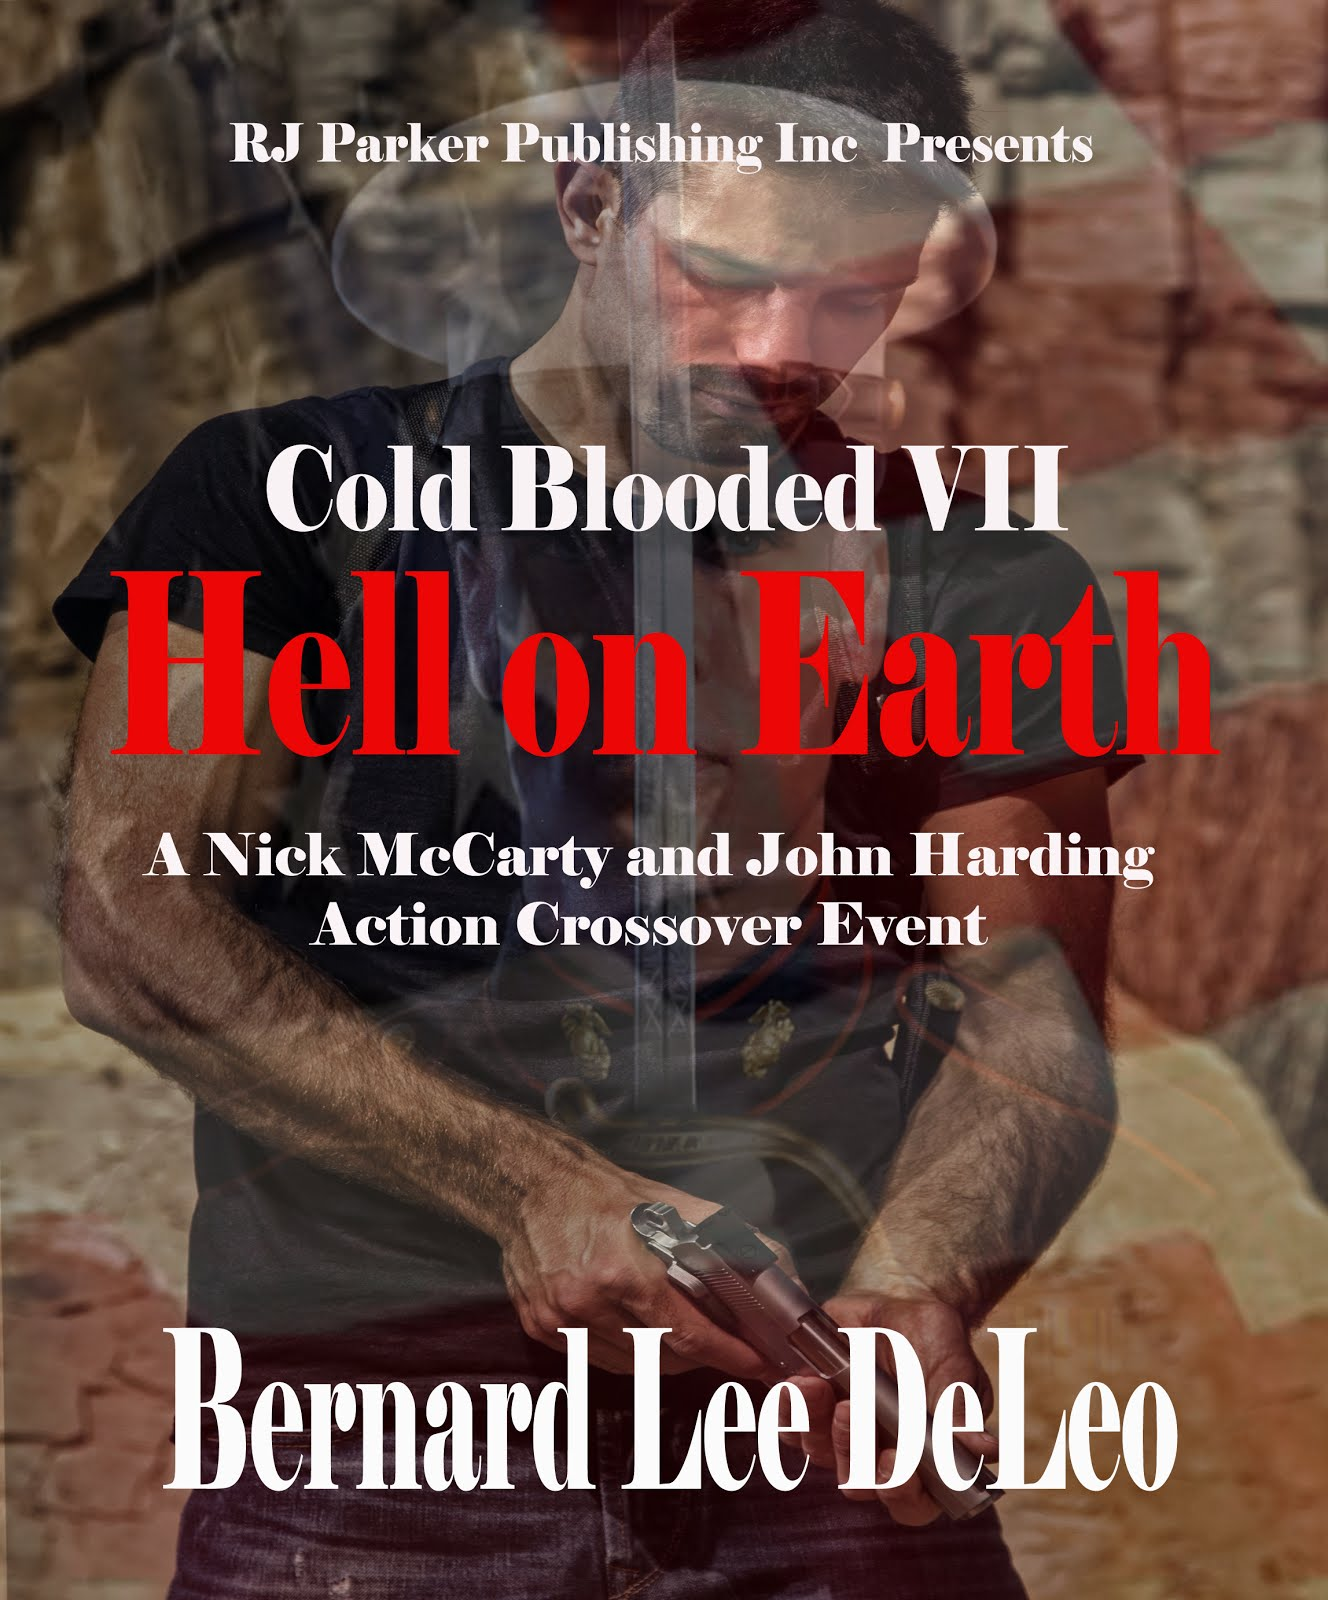 Cold Blooded Book VII: Hell on Earth